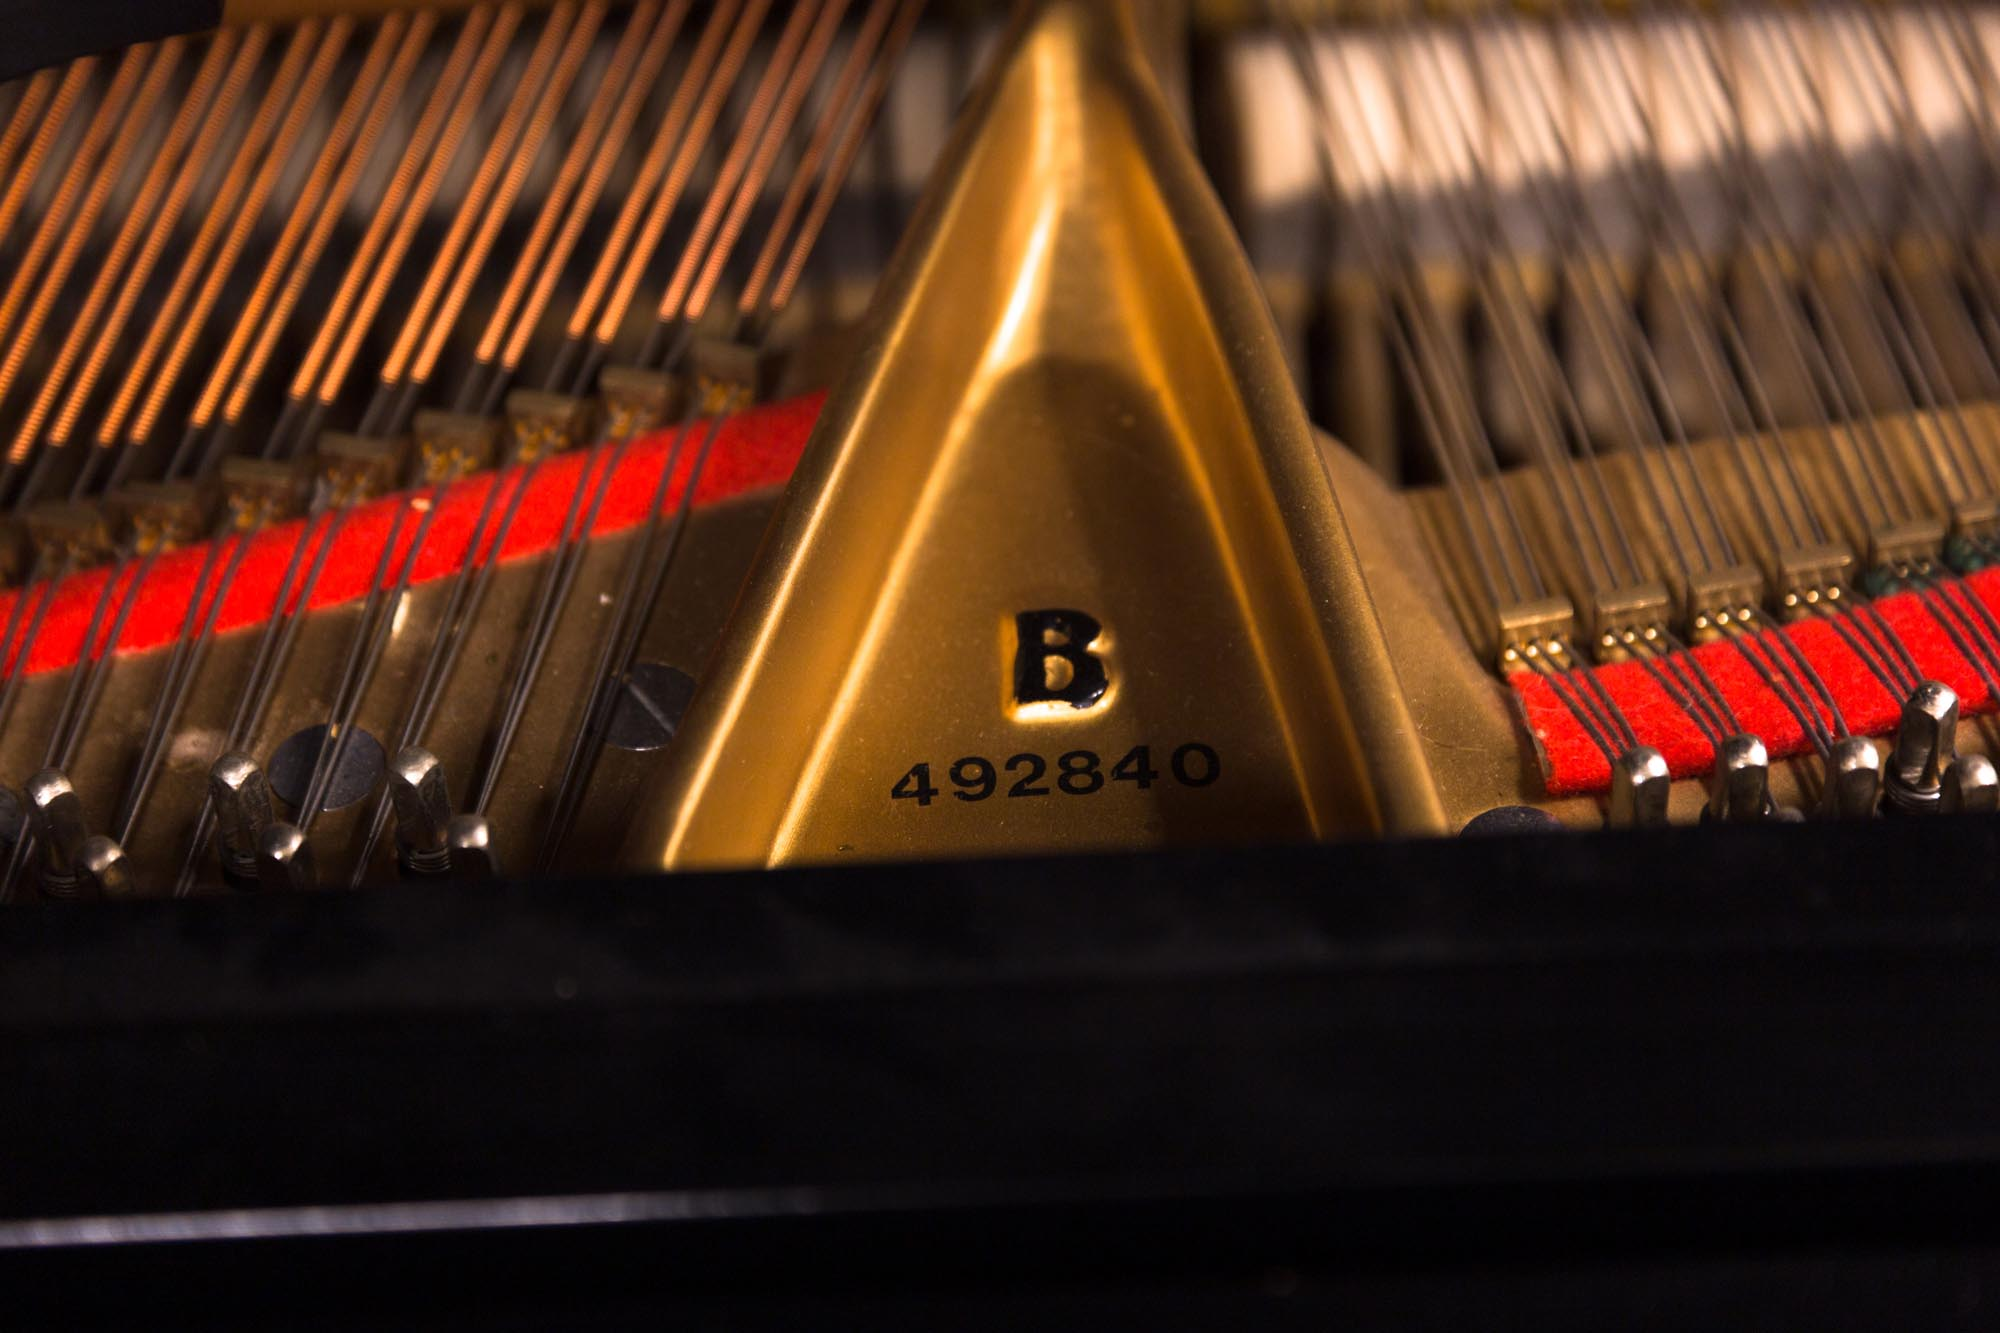 "Lot 216 - Steinway Ebony Model B. Ebony veneer. Serial No: 492840 L 83"" W 58"". Online bidding available:"